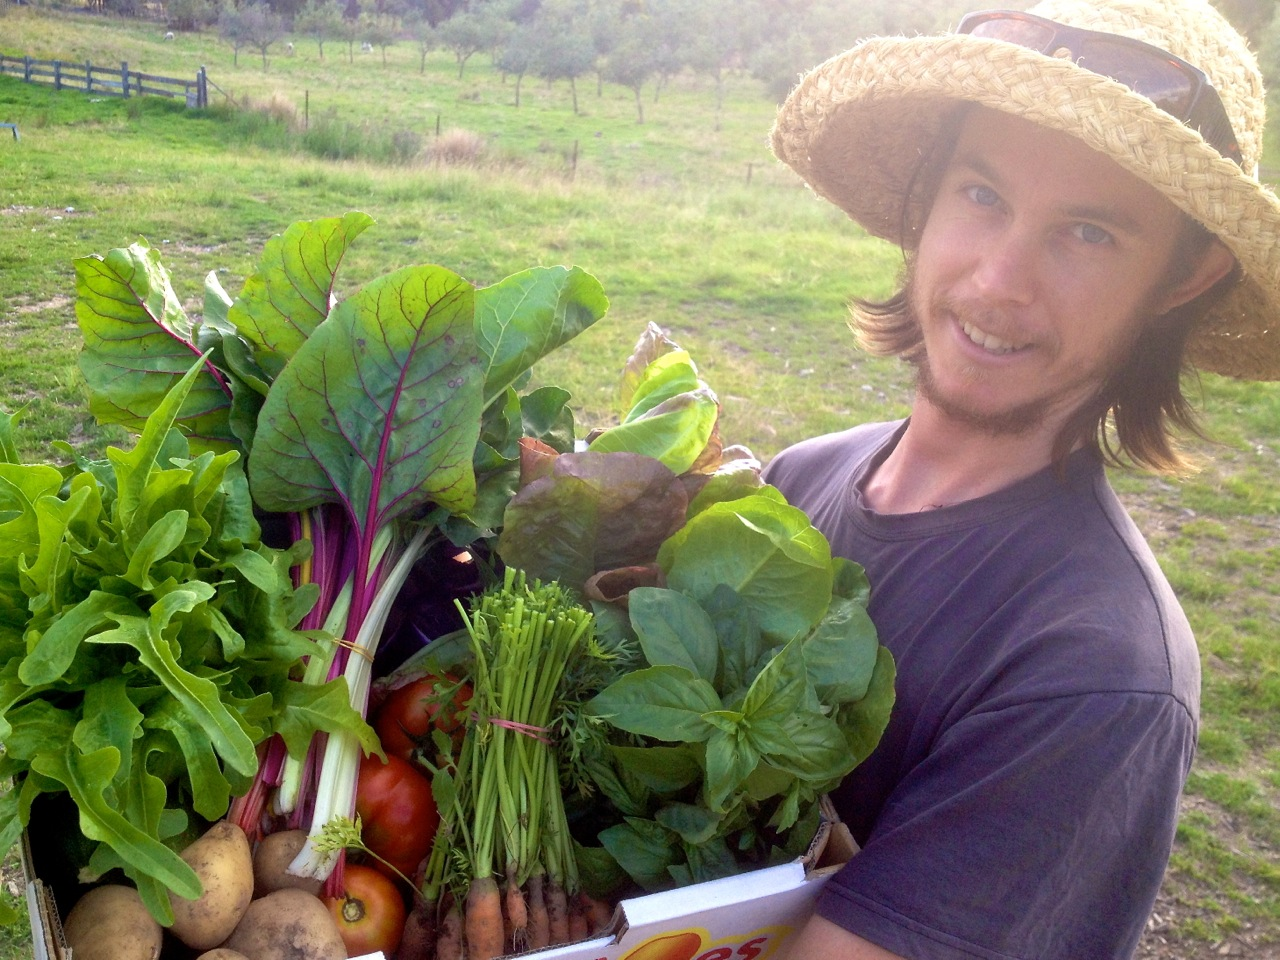 Michael Hewins With A Big Bunch Of Organic Veggies